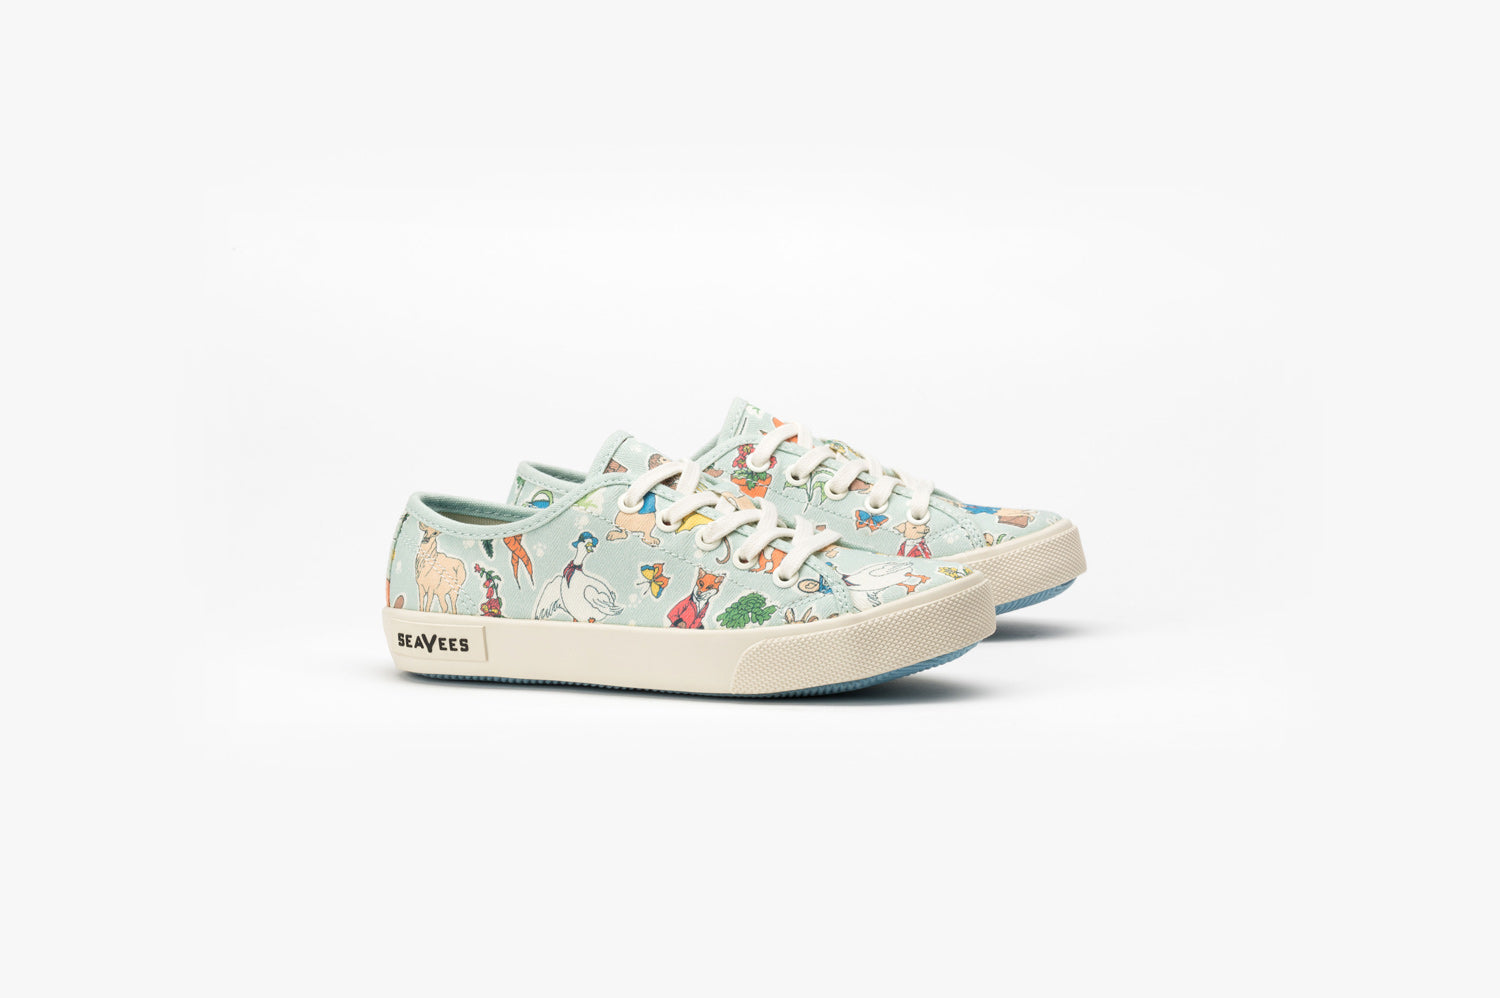 Big Kids - Monterey Sneaker Peter Rabbit - Green